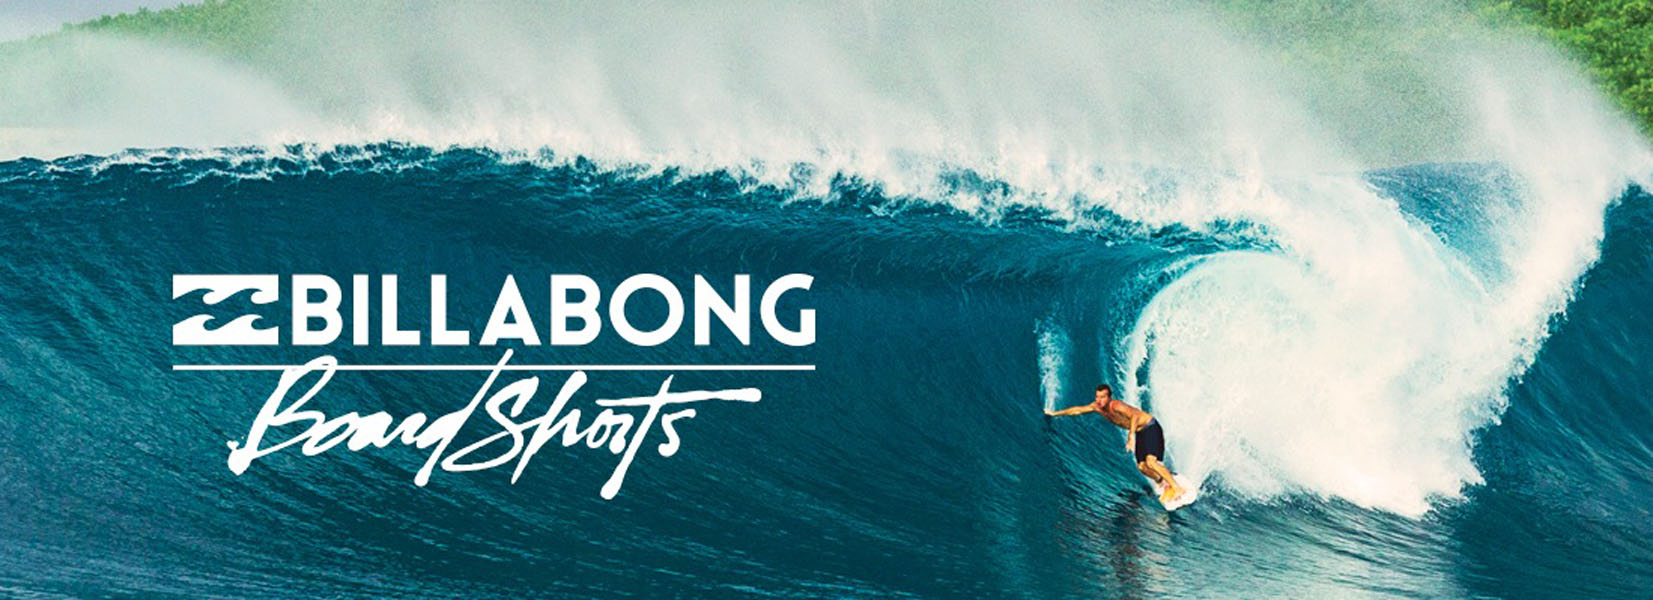 Billabong-banner2.jpg